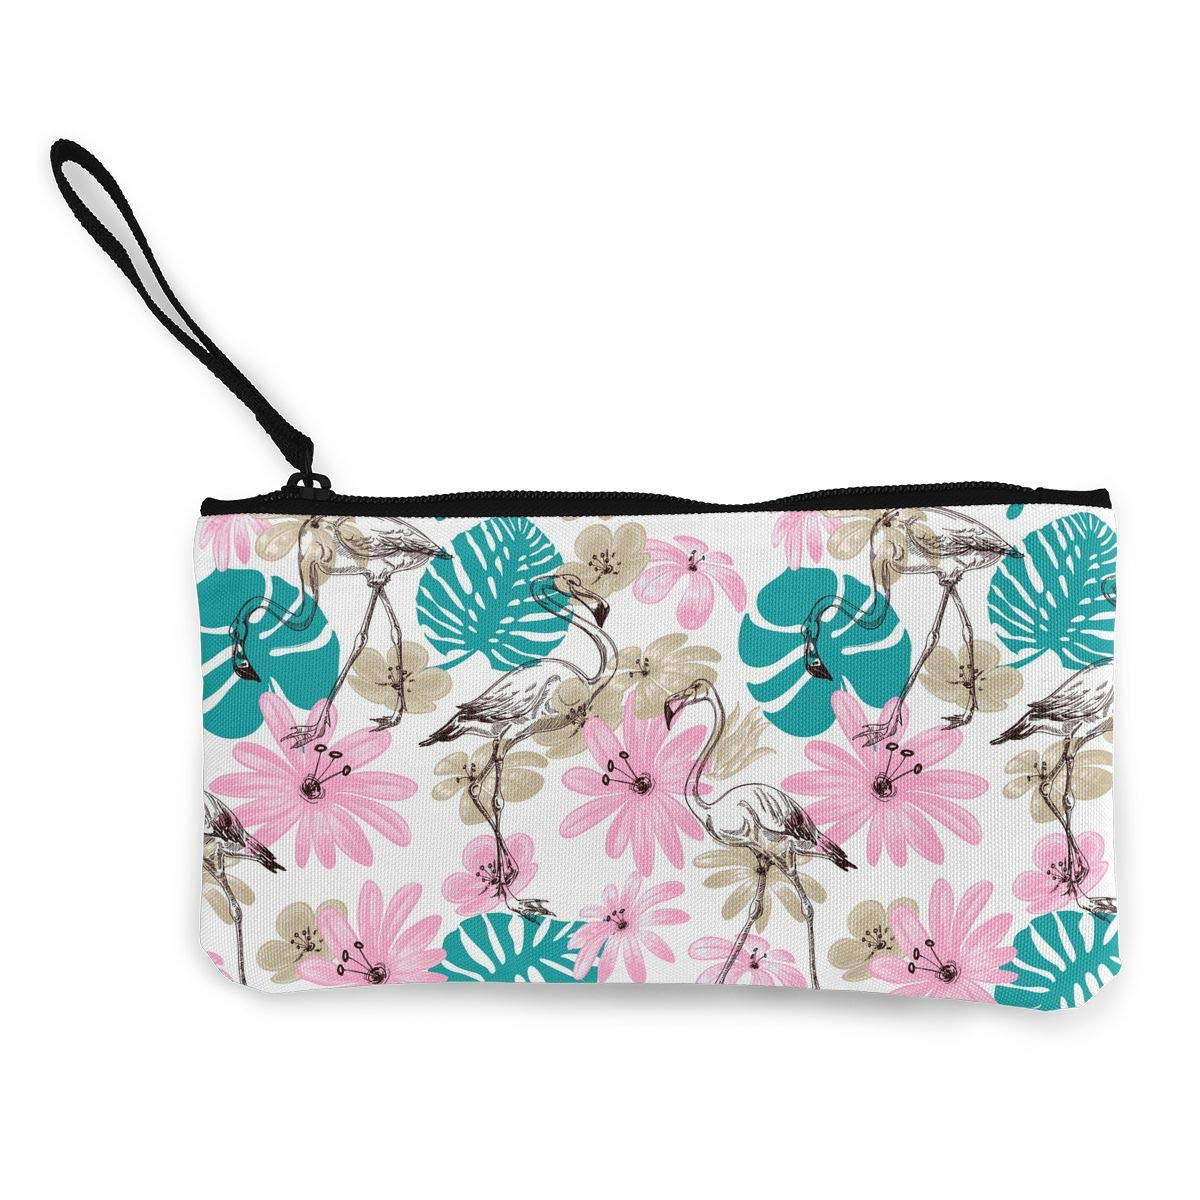 Cellphone Clutch Purse With Wrist Strap Flamingo And Flowers Pattern Zipper Small Purse Wallets Girls Canvas Coin Purse